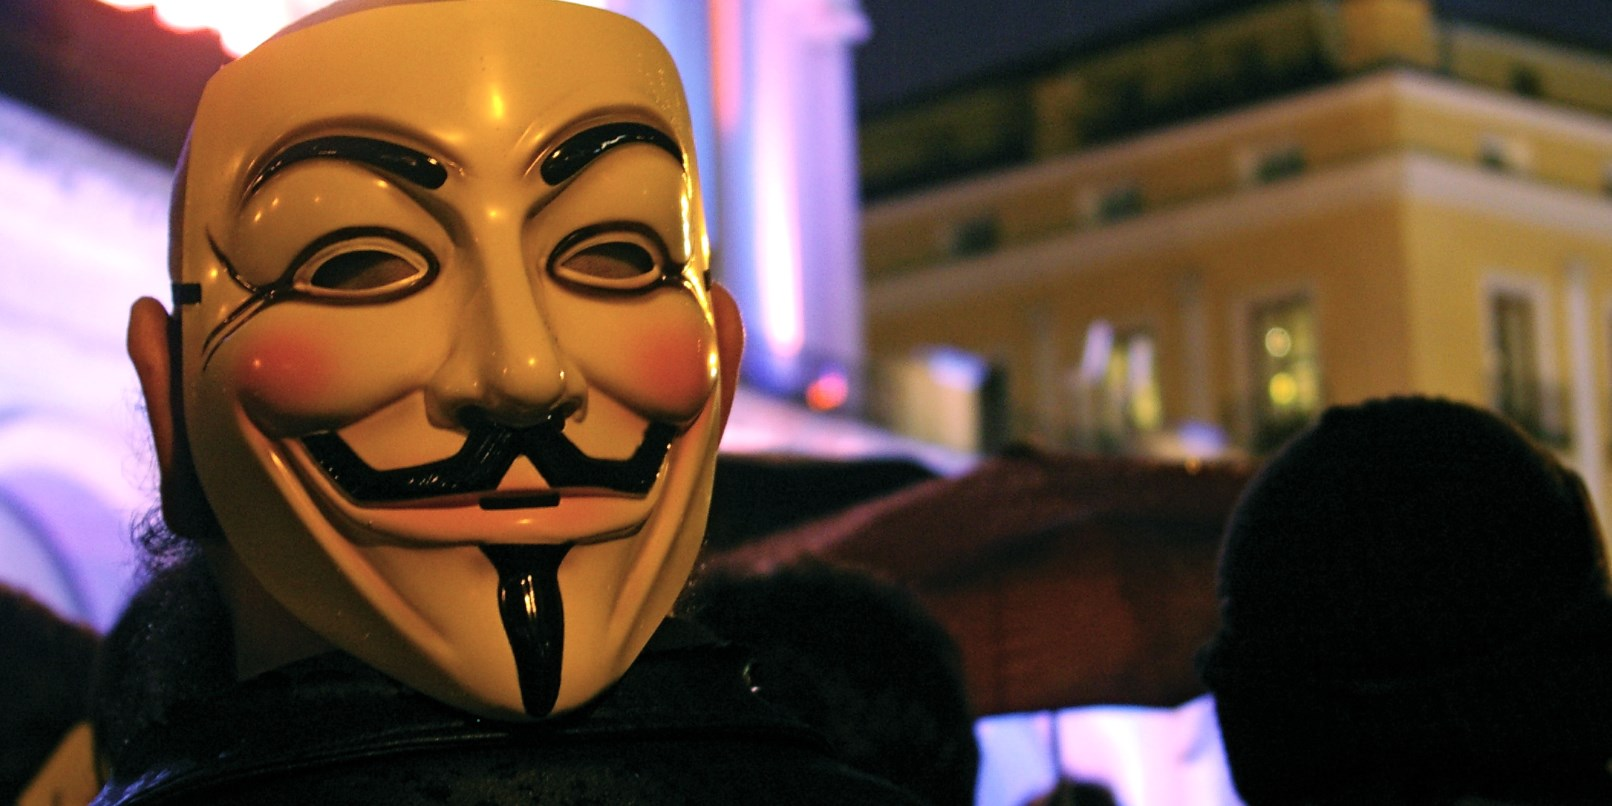 Anonymous takes down Nissan's site over whaling in Japan